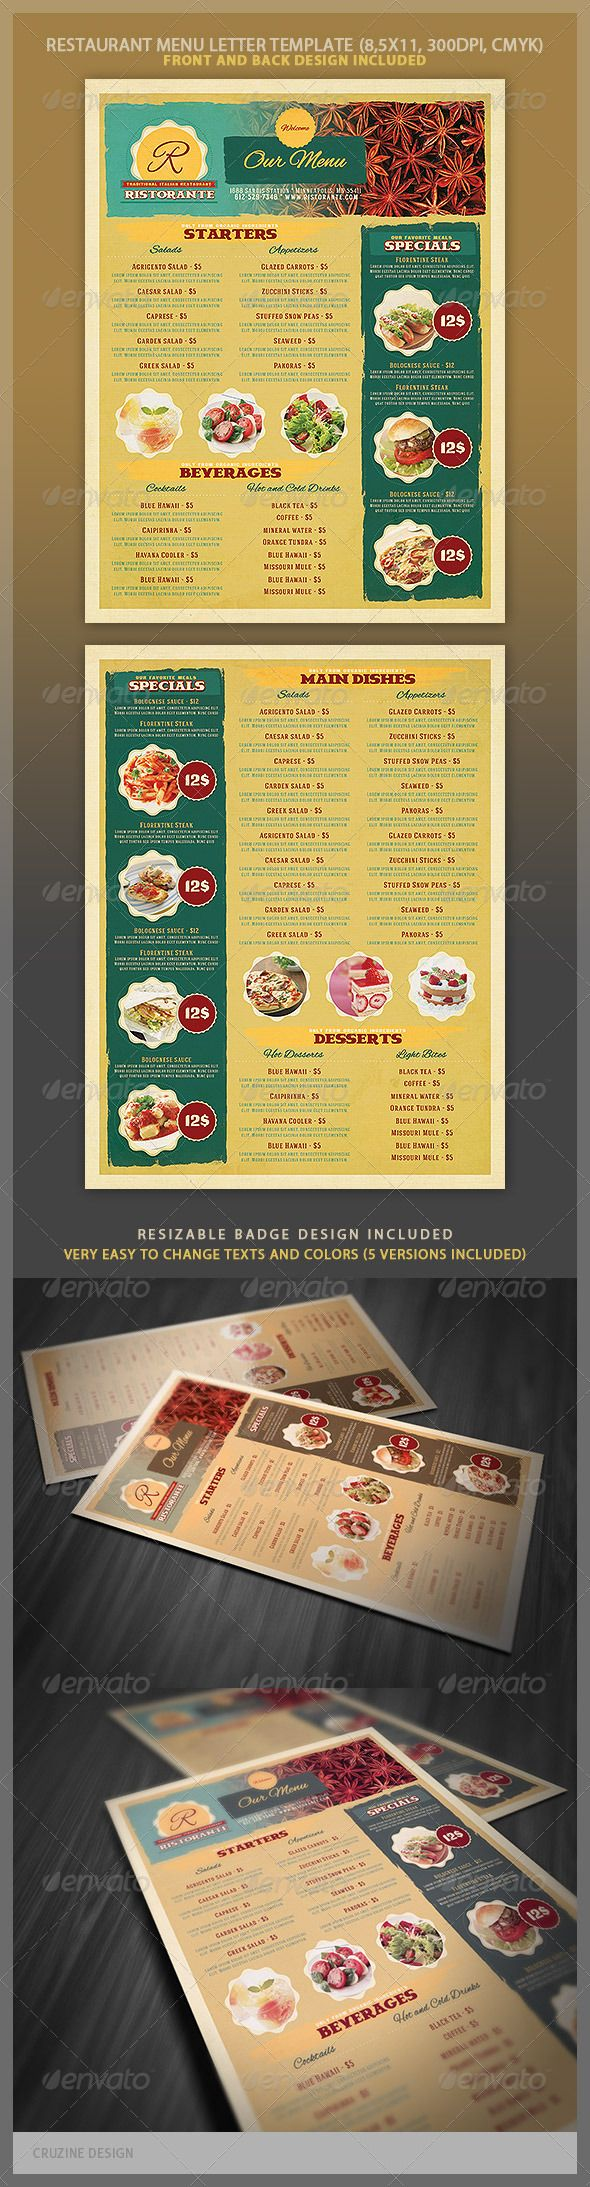 Restaurant Menu Template - http://graphicriver.net/item/restaurant-menu-template/4057527?ref=cruzine